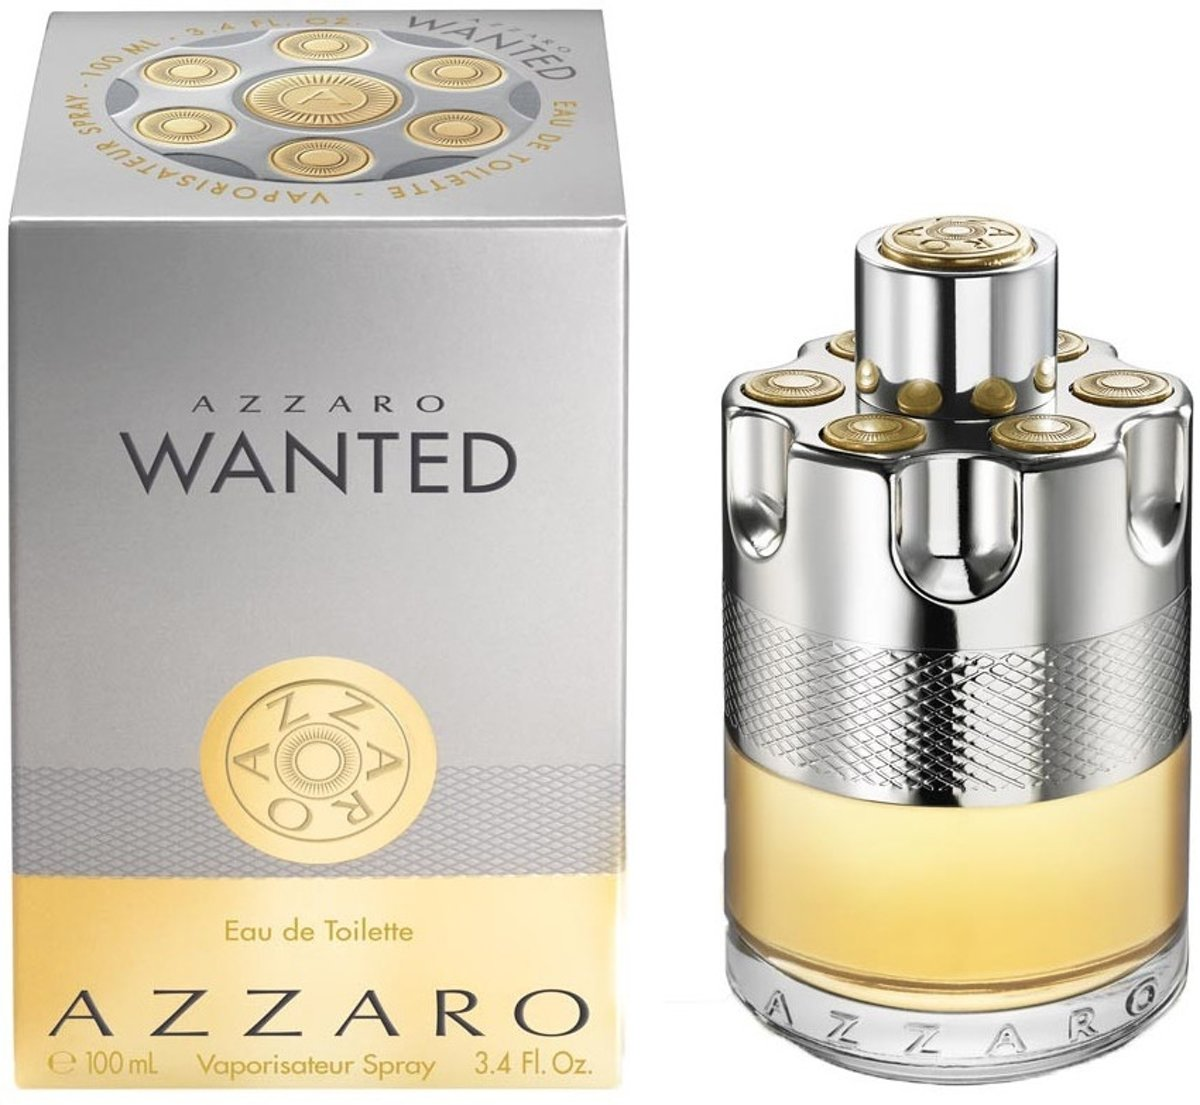 Azzaro - Eau de toilette - Wanted - 50 ml